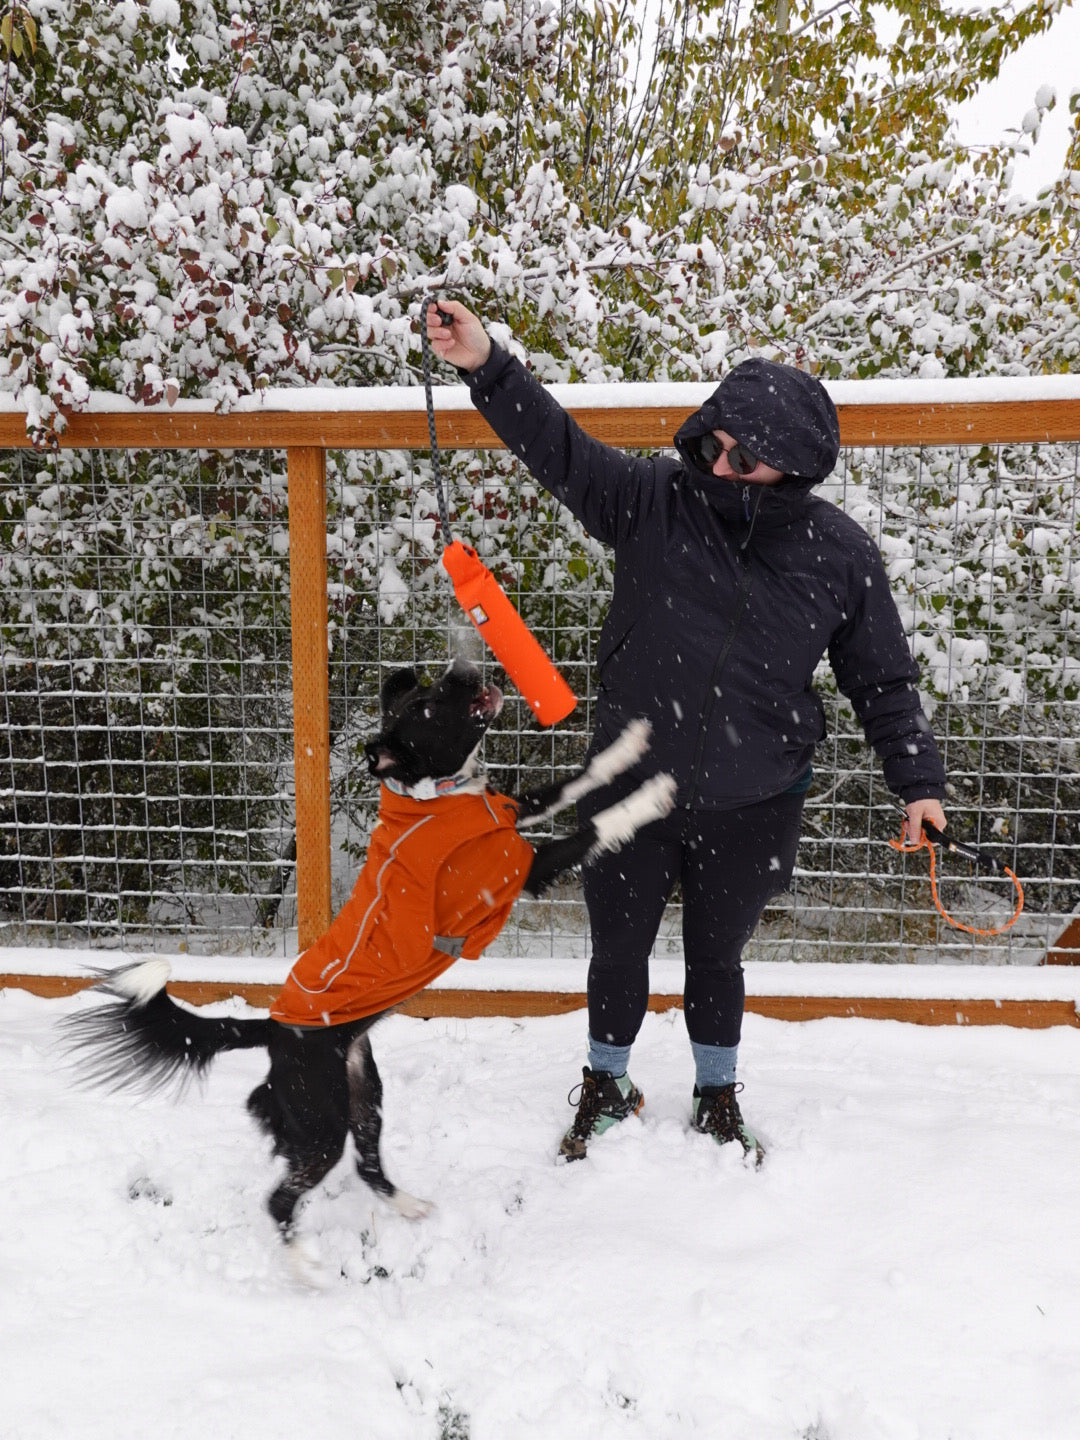 Person throws lunker for dog layered in Climate Changer fleece and overcoat dog utility jacket in snow.